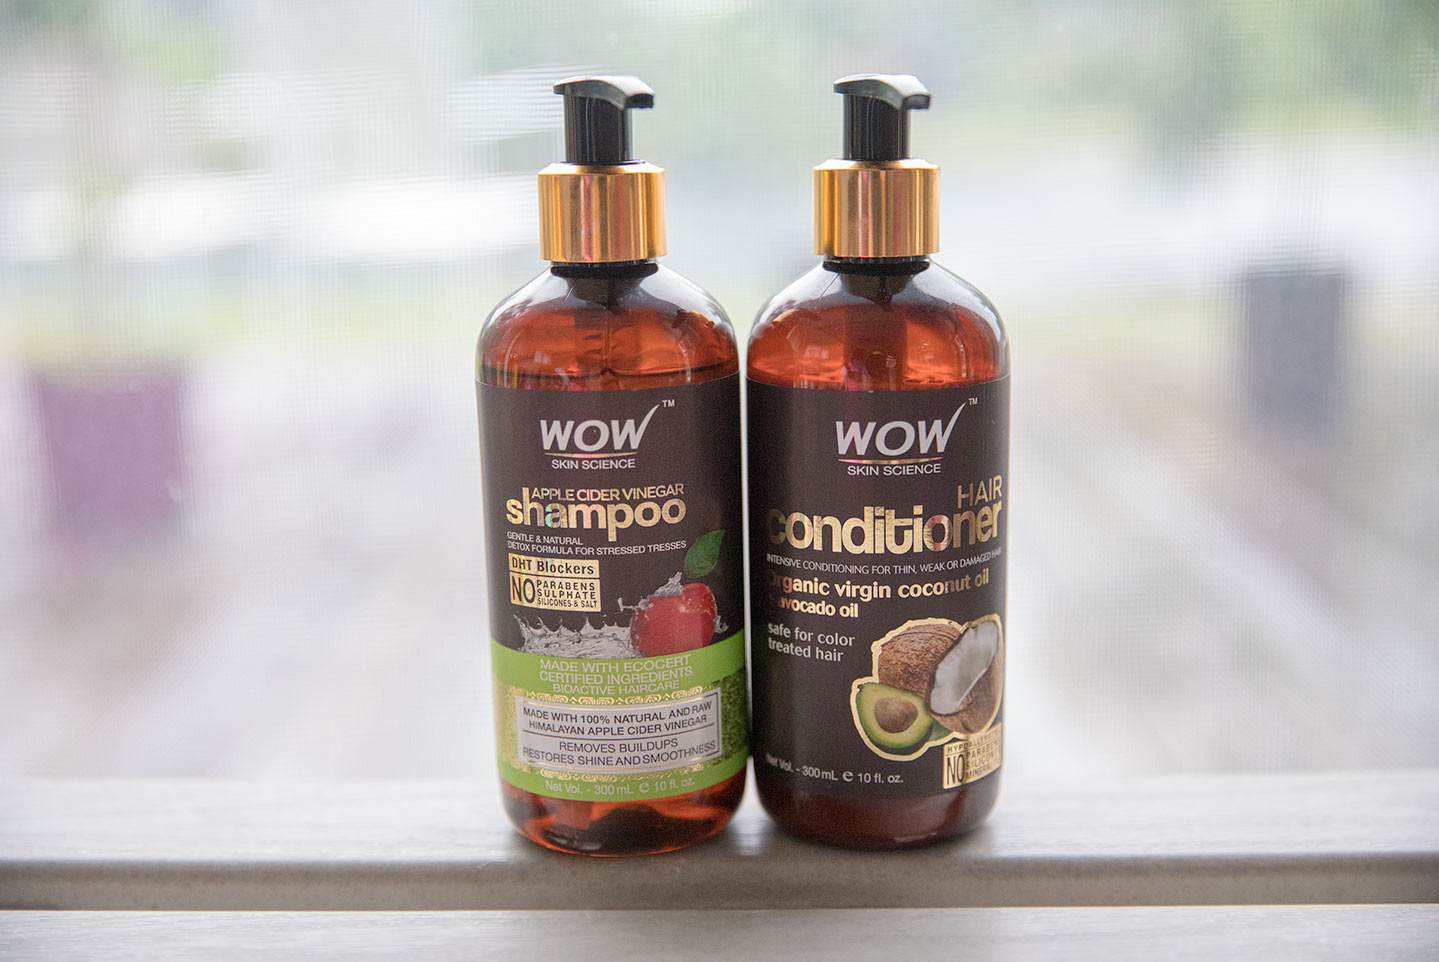 Wow Apple Cider Vinegar Shampoo Review Momma Review